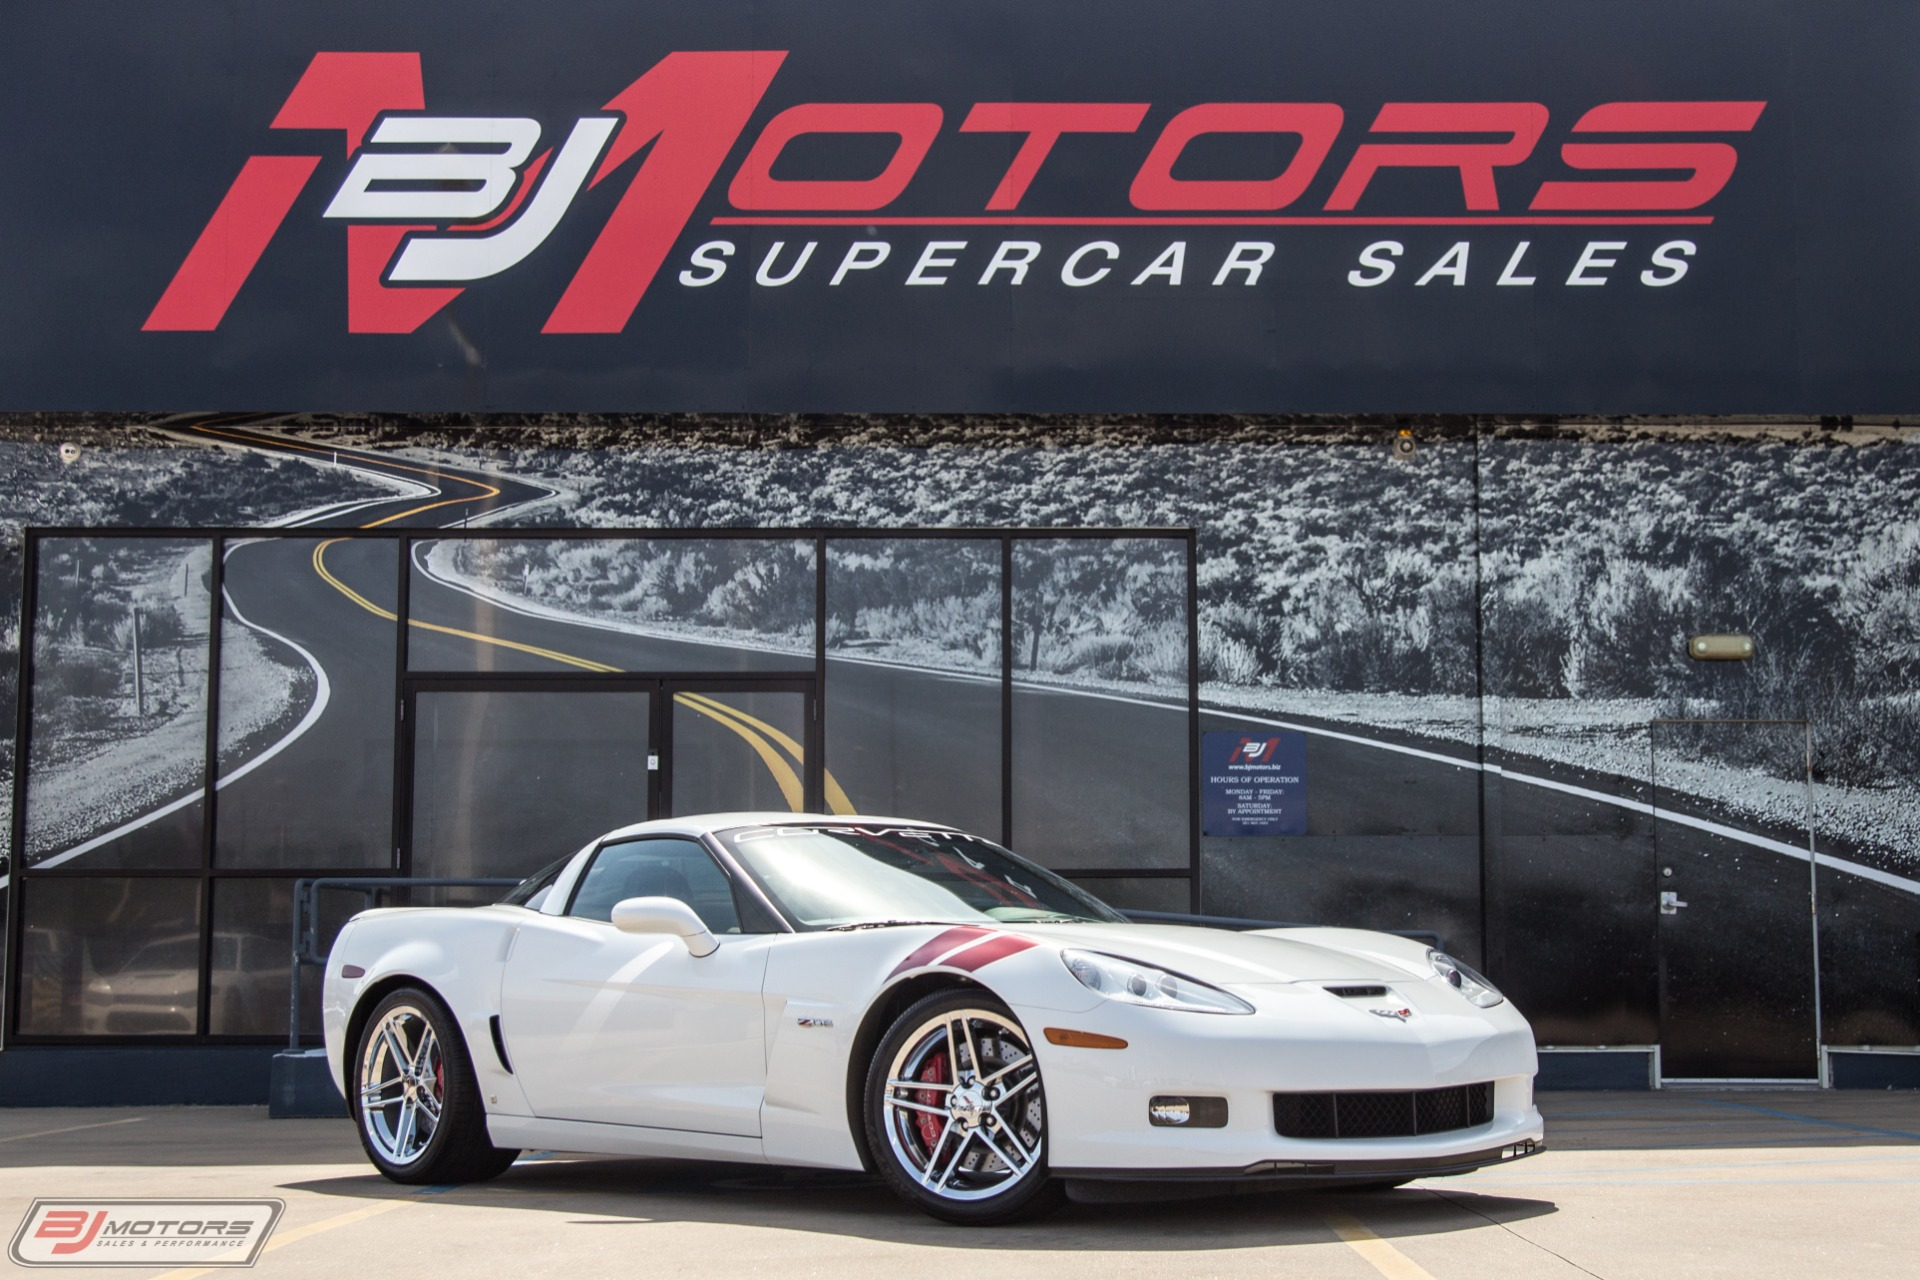 Used 2007 Chevrolet Corvette Ron Fellows Edition Z06 For